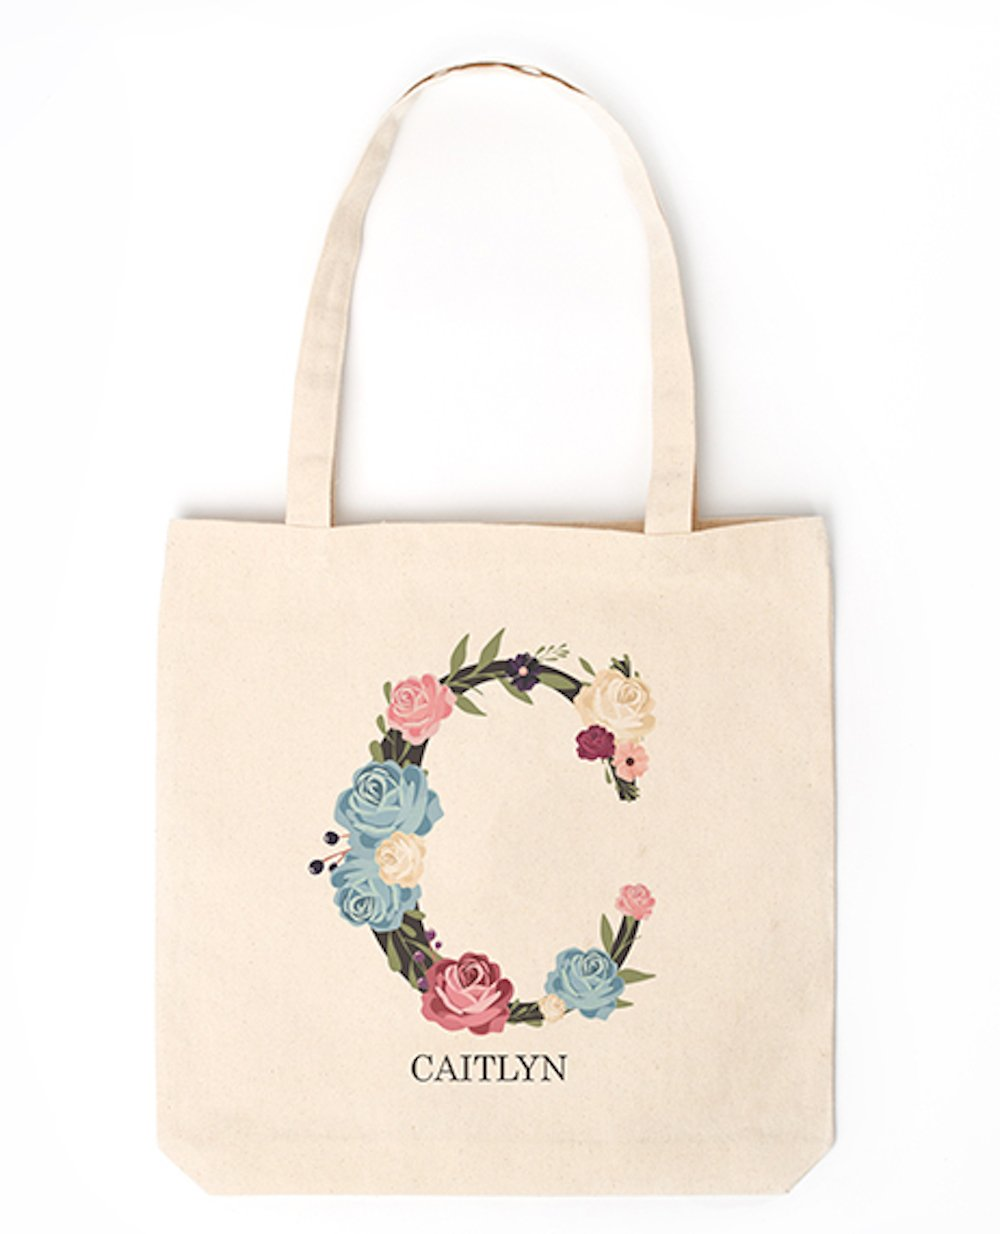 Personalized Monogrammed Tote Bags for Women - Unique Monogrammed Gifts for Women, Also A Gift for Mom (Letter C)